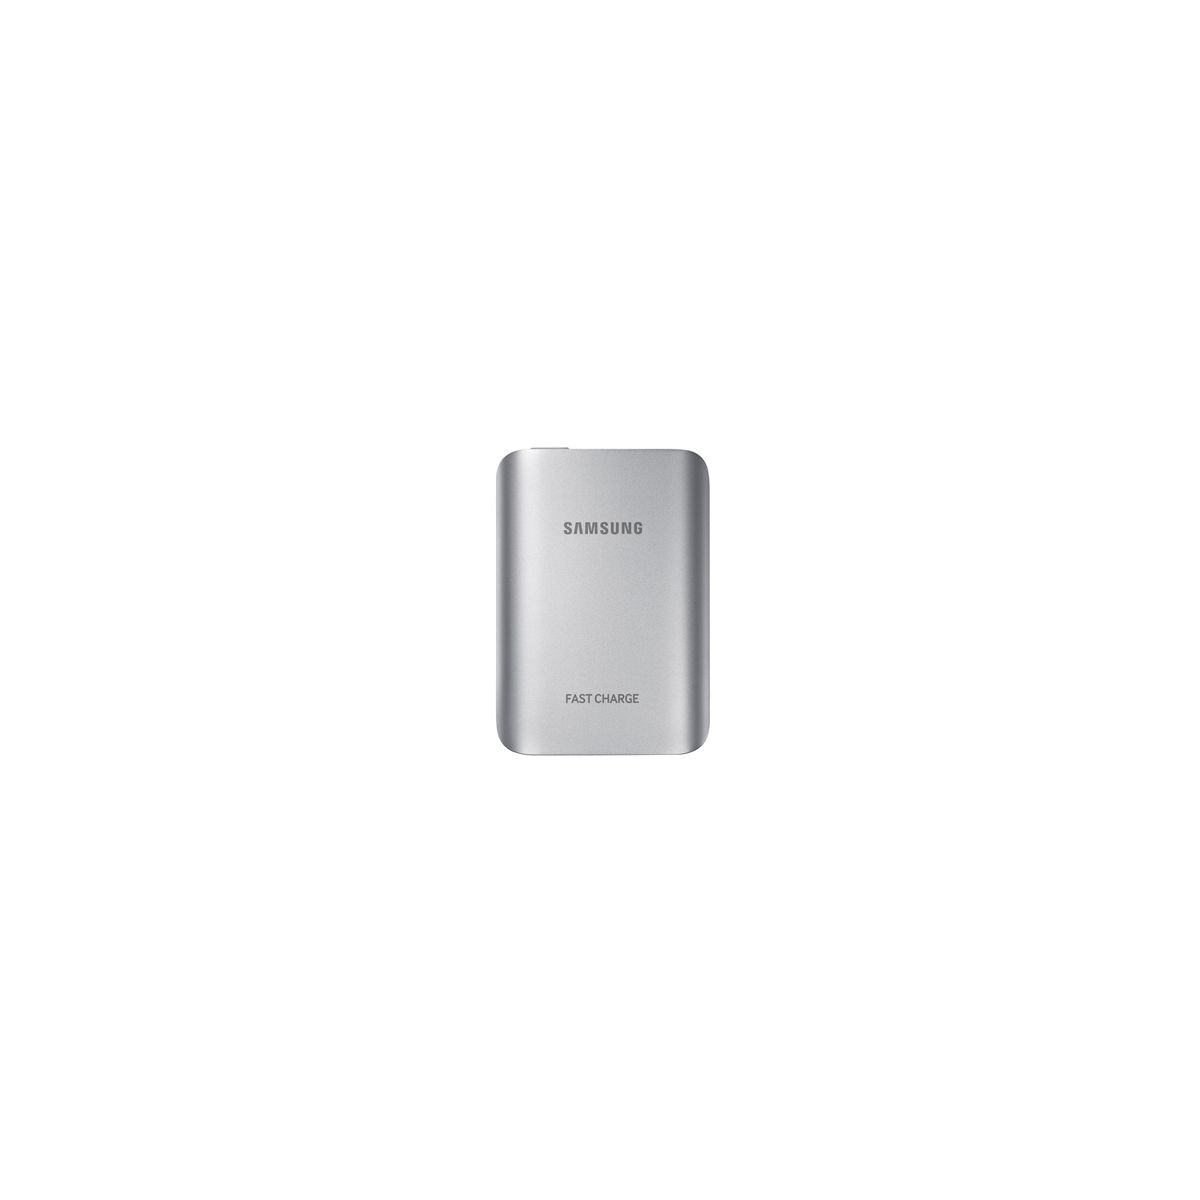 Batterie portable SAMSUNG Argent 5100 mAh Fast in/out (photo)